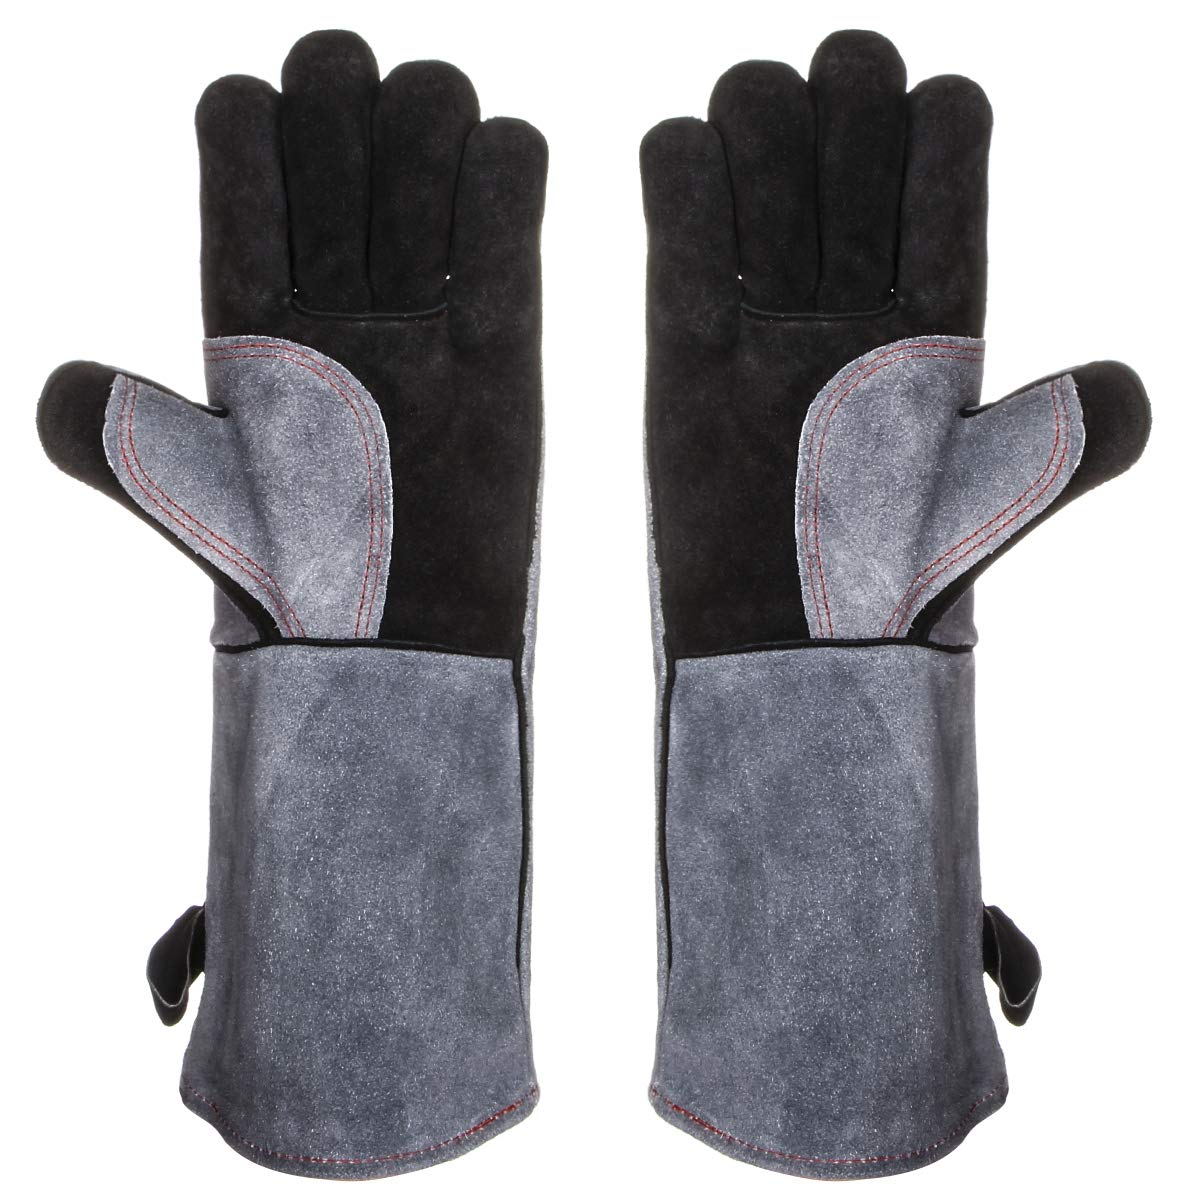 """16"""" Welding BBQ Gloves with Kevlar Stitching, 932°F Extreme Heat Resistant Leather Oven Mitts for Fireplace, Wood Stove, Oven, Tig Welder, Grilling, Welding, Barbecue, Mig, Pot Holder, Animal Handling"""